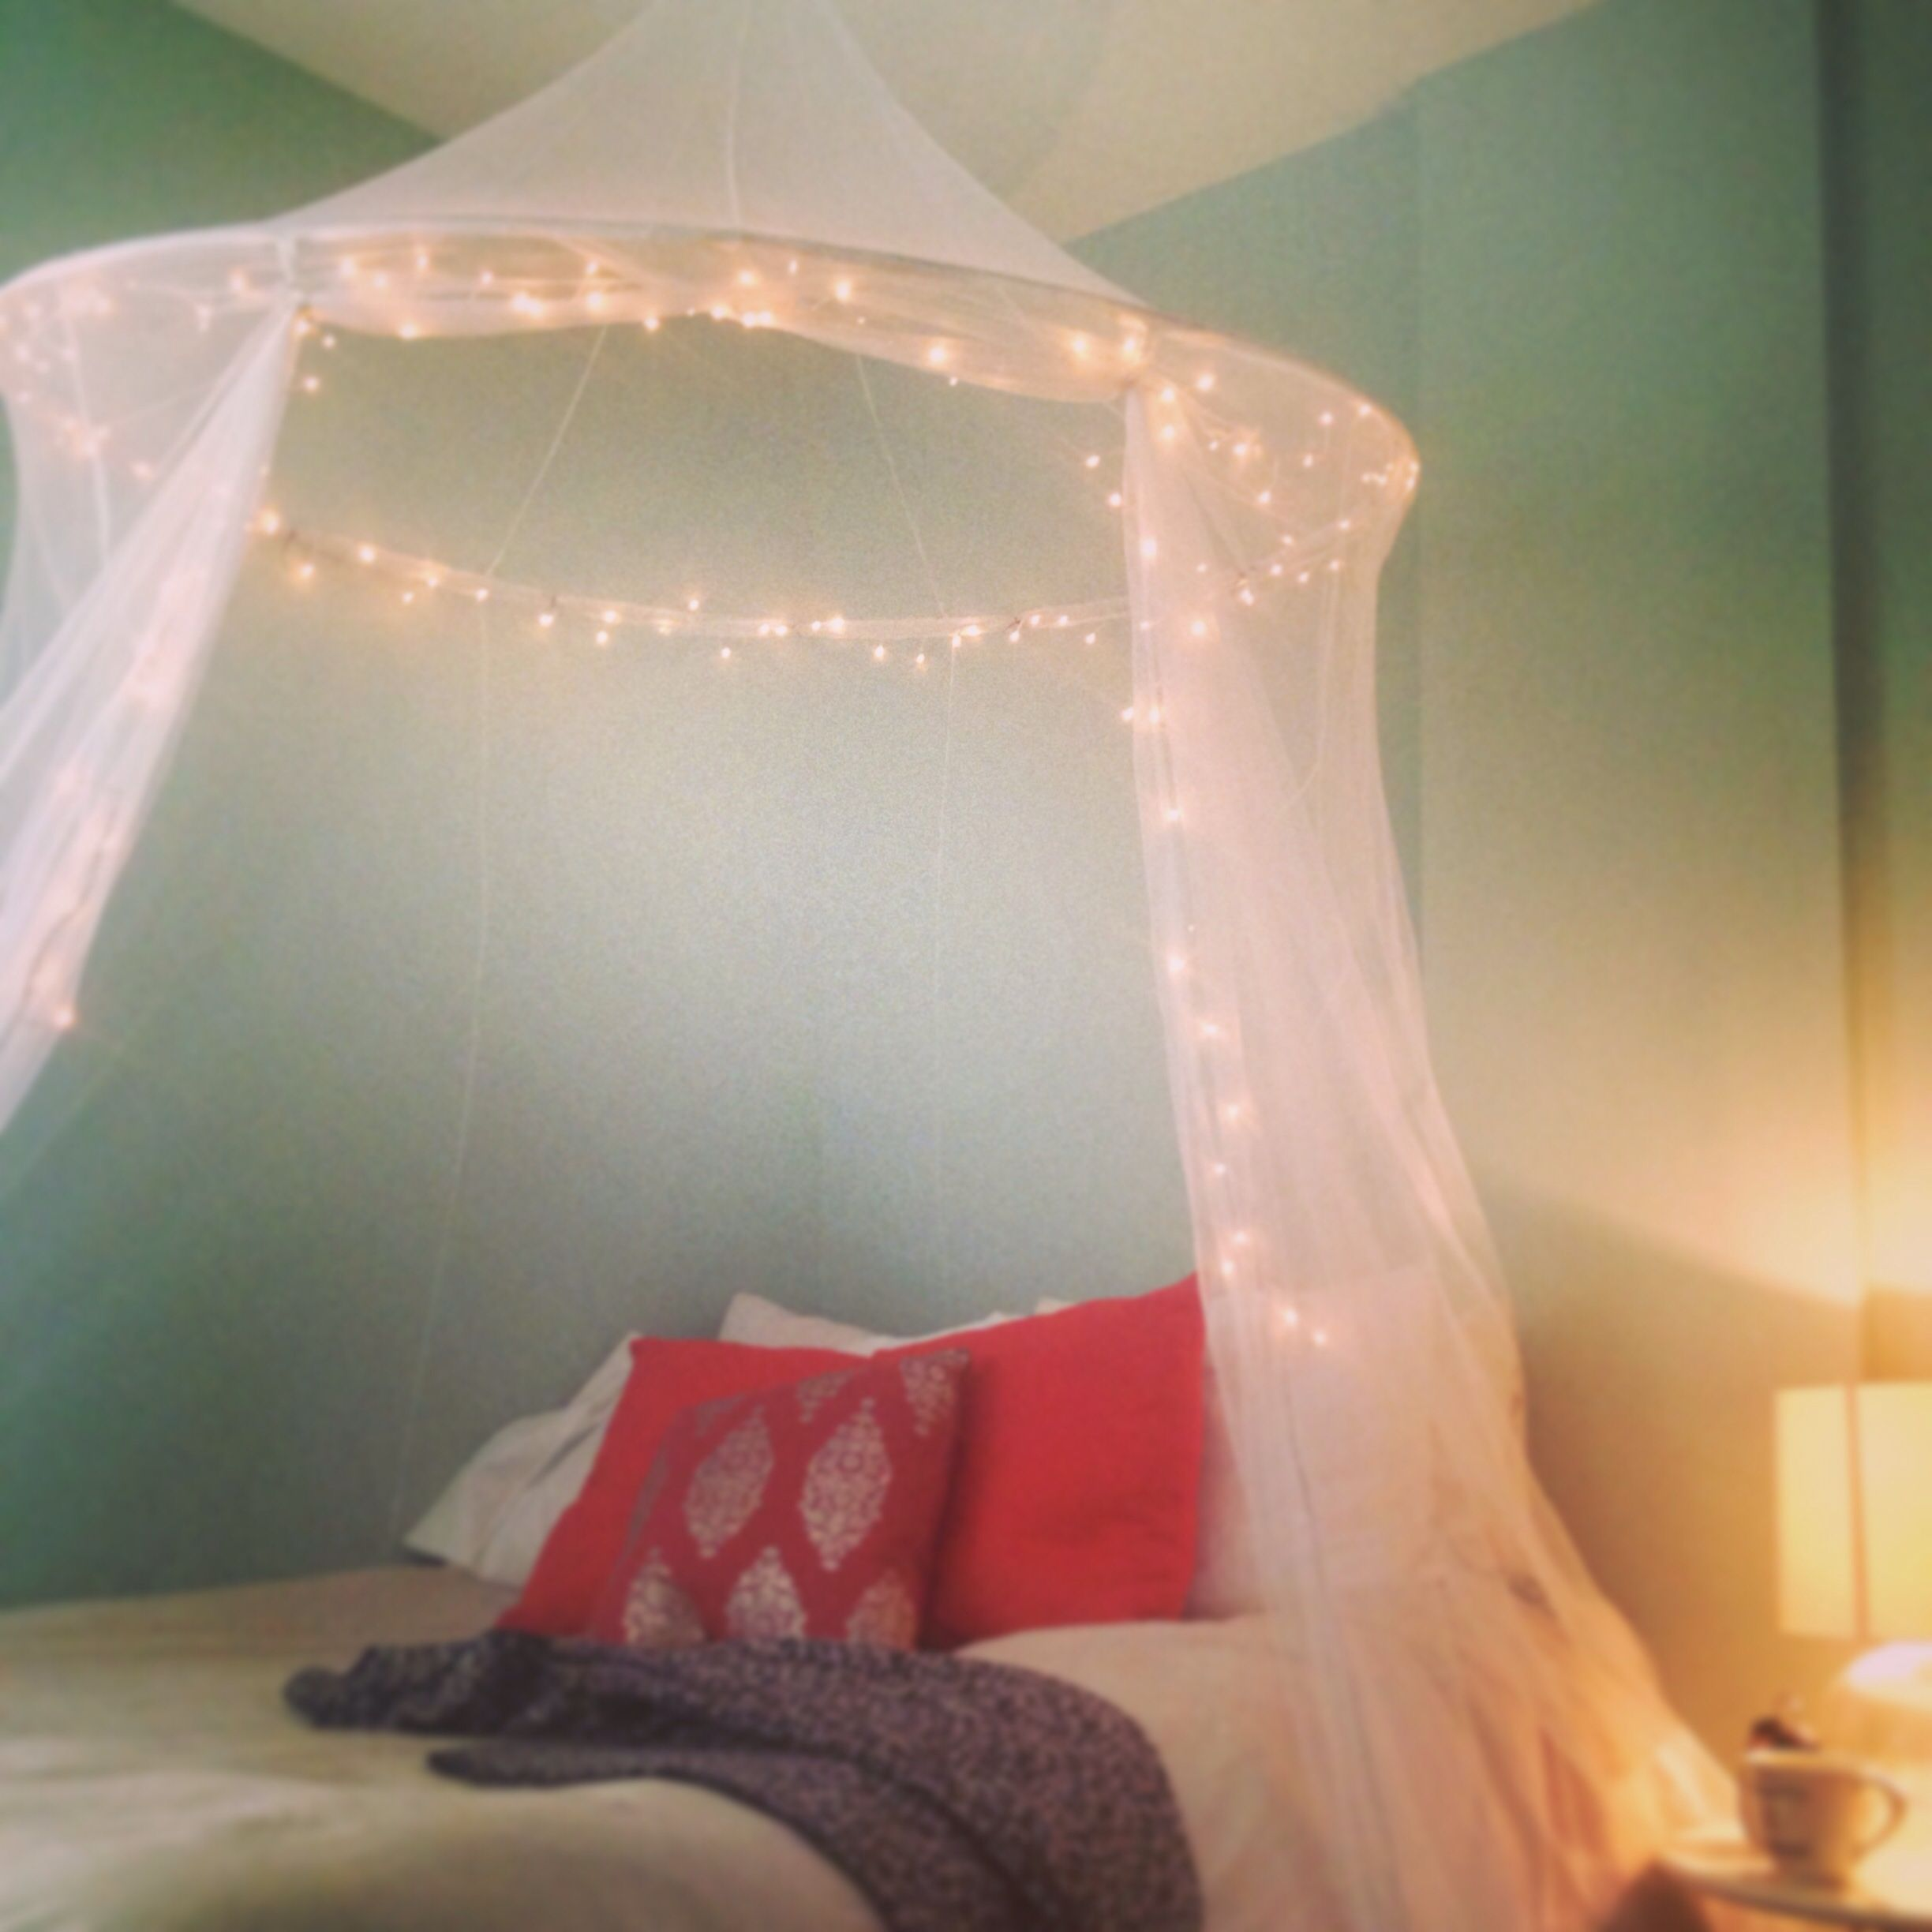 Bed canopy with lights - Whimsical Bed Canopy With Lights Canopy Net Was Purchased At Ikea Lights Purchased At Ac